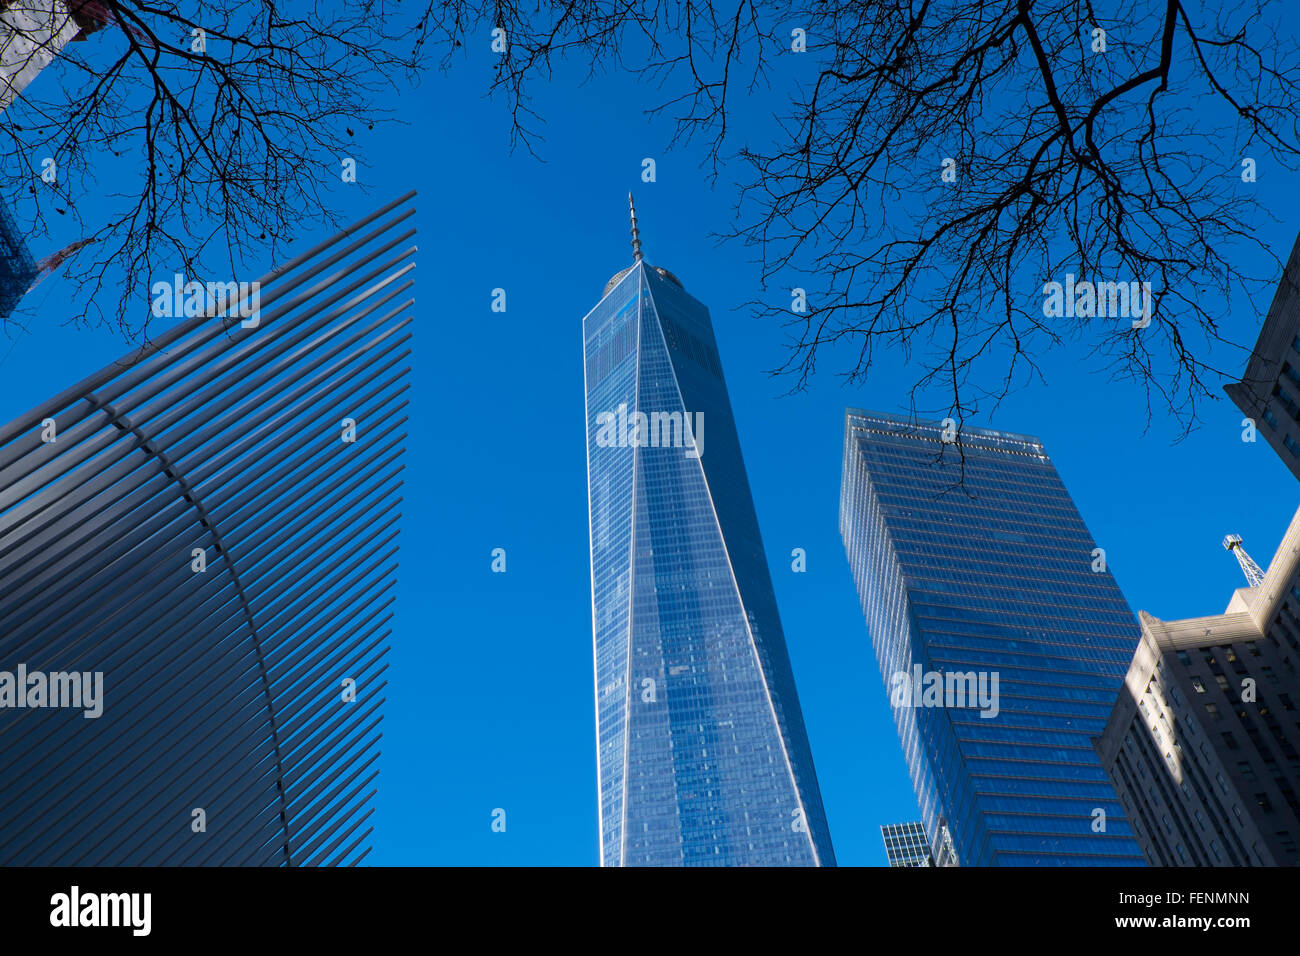 Freedom Tower, One World Trade Centre building, at the site of Grund Zero, lower Manhattan, New York City, USA - Stock Image